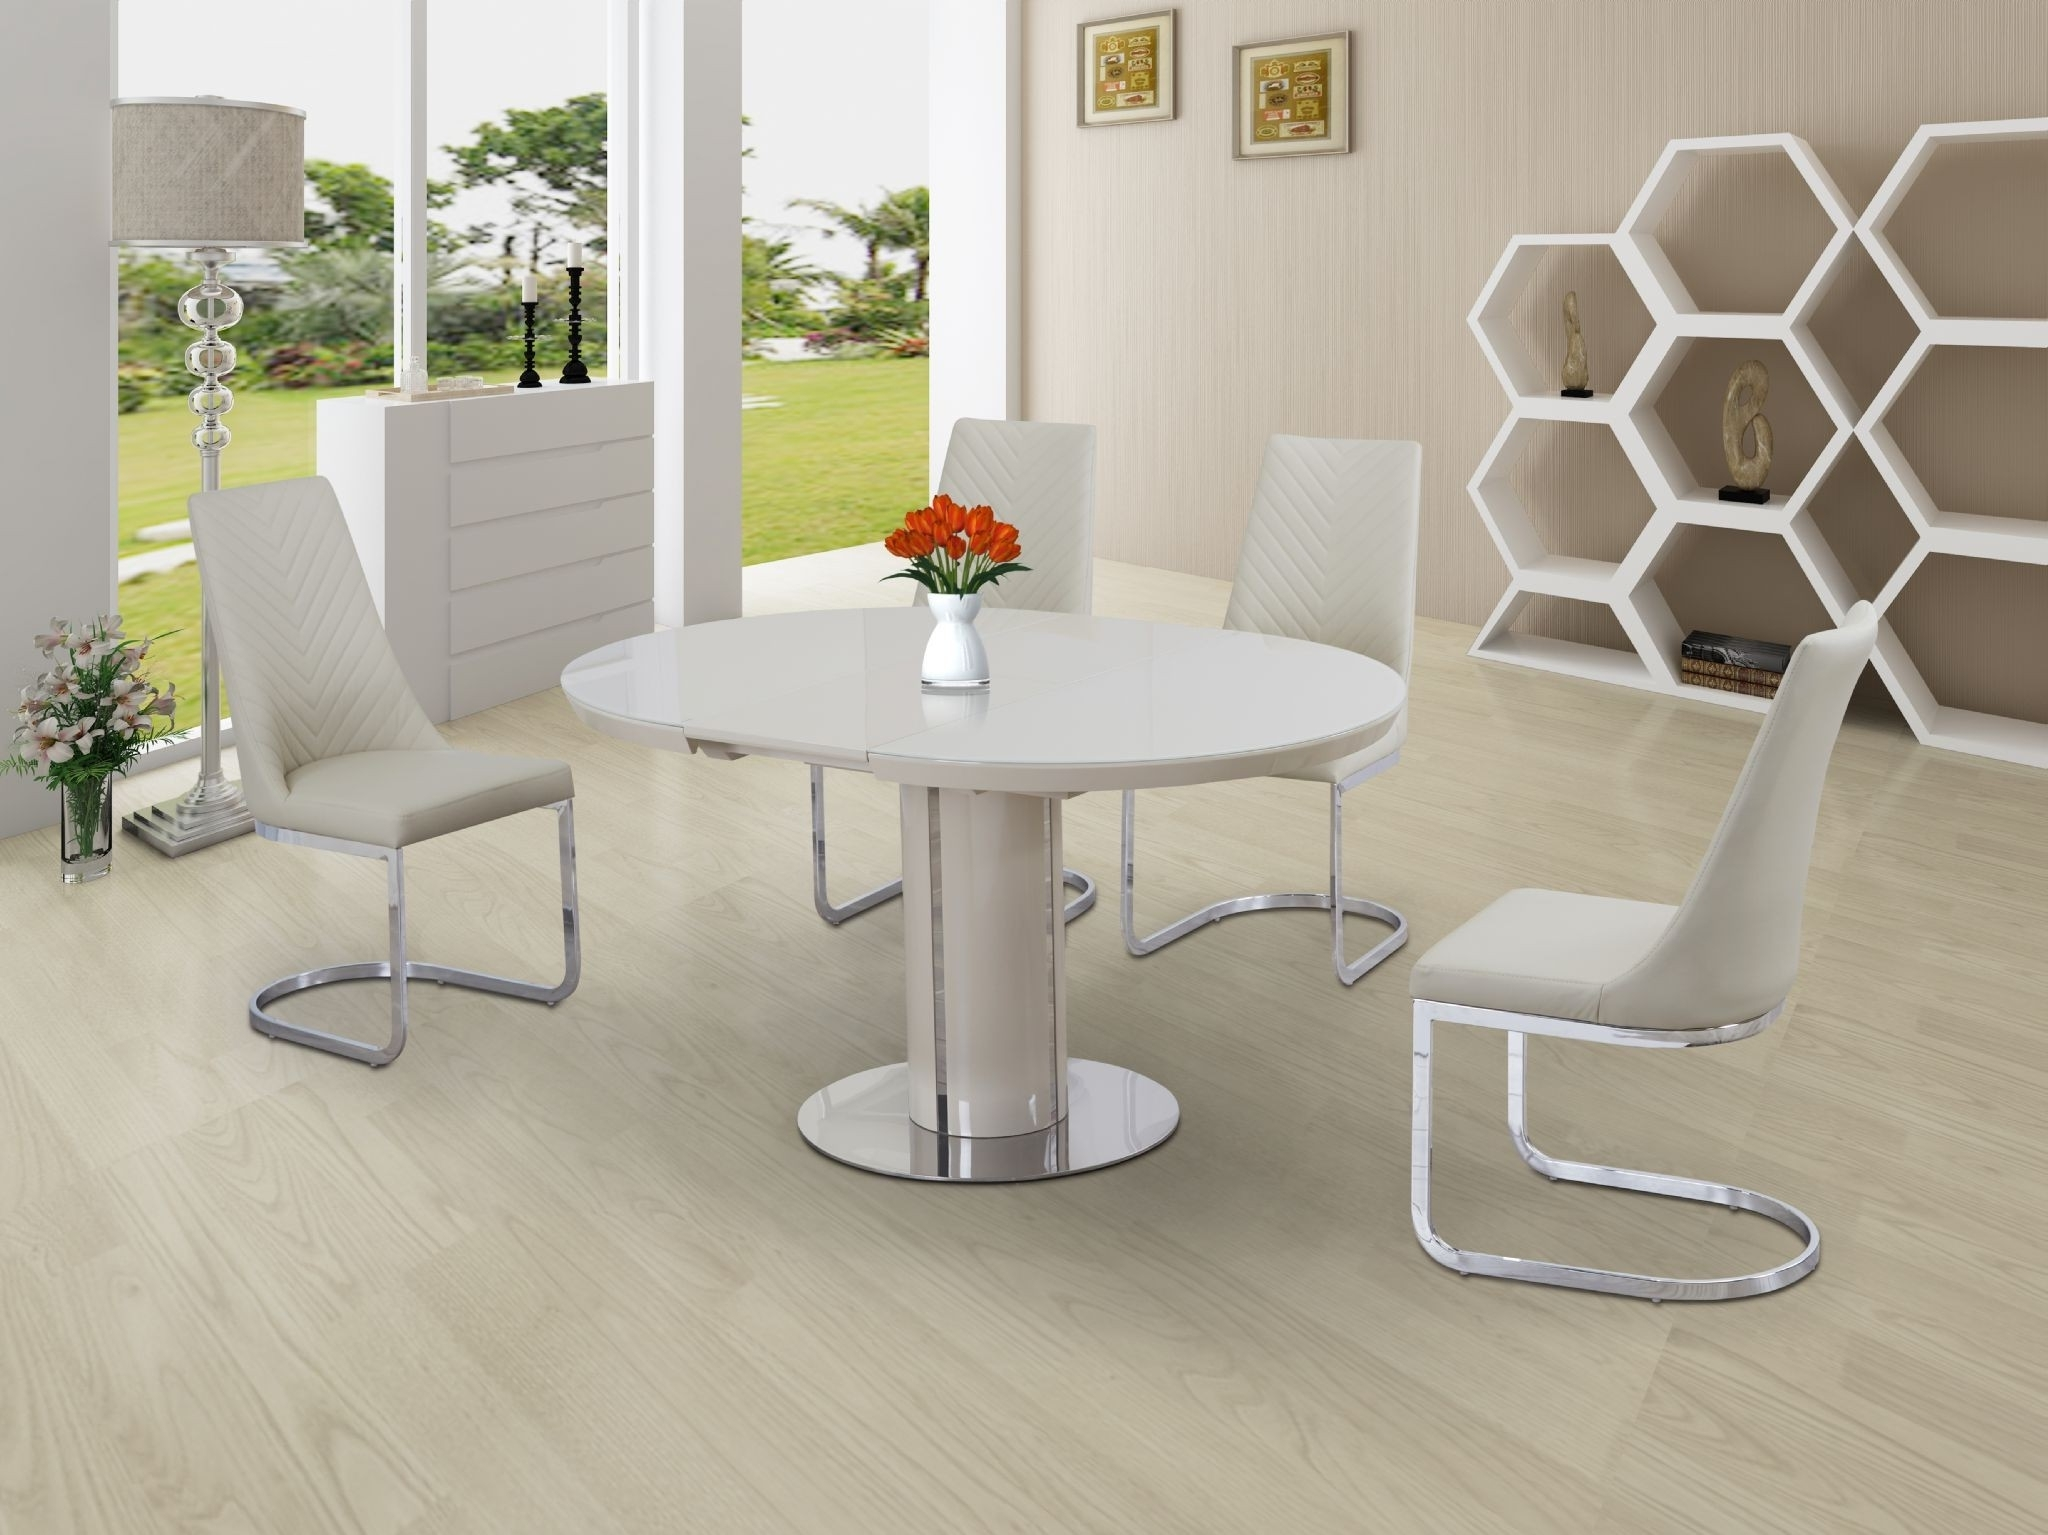 High Gloss Dining Tables And Chairs Inside Popular Buy Annular Cream High Gloss Extending Dining Table (Gallery 11 of 25)